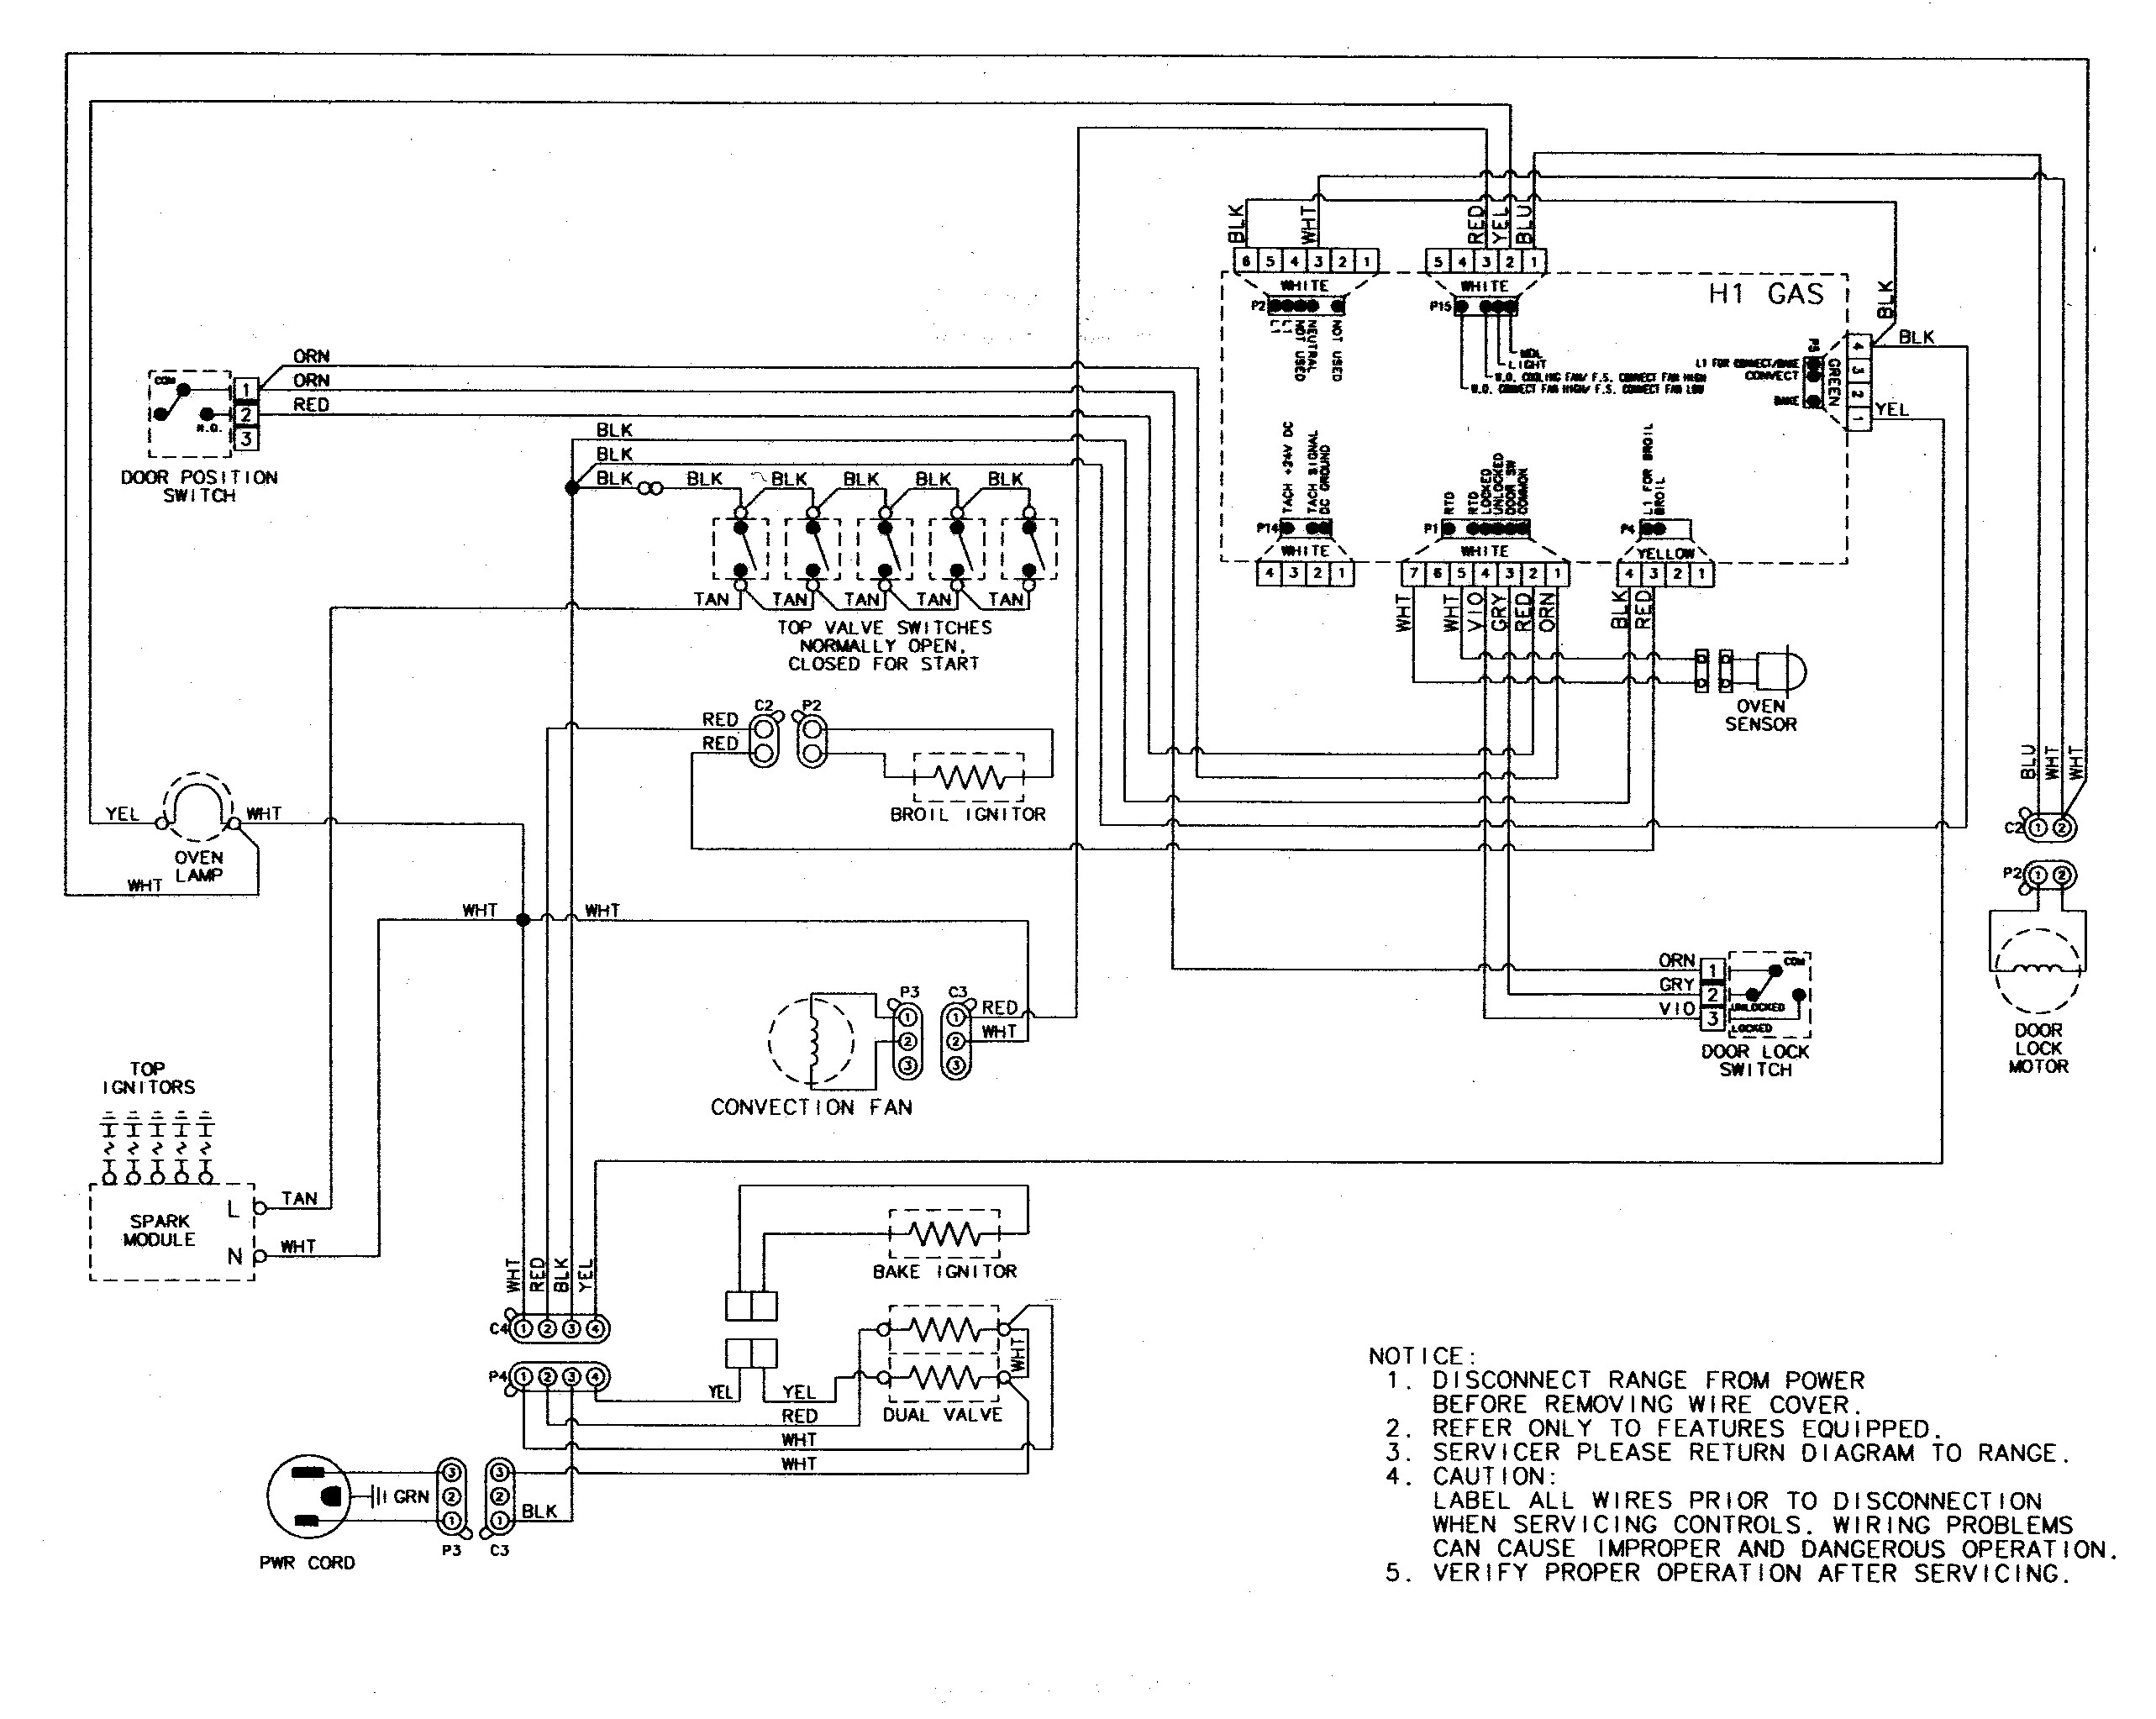 Powder Coat Oven Wiring Diagram Collection